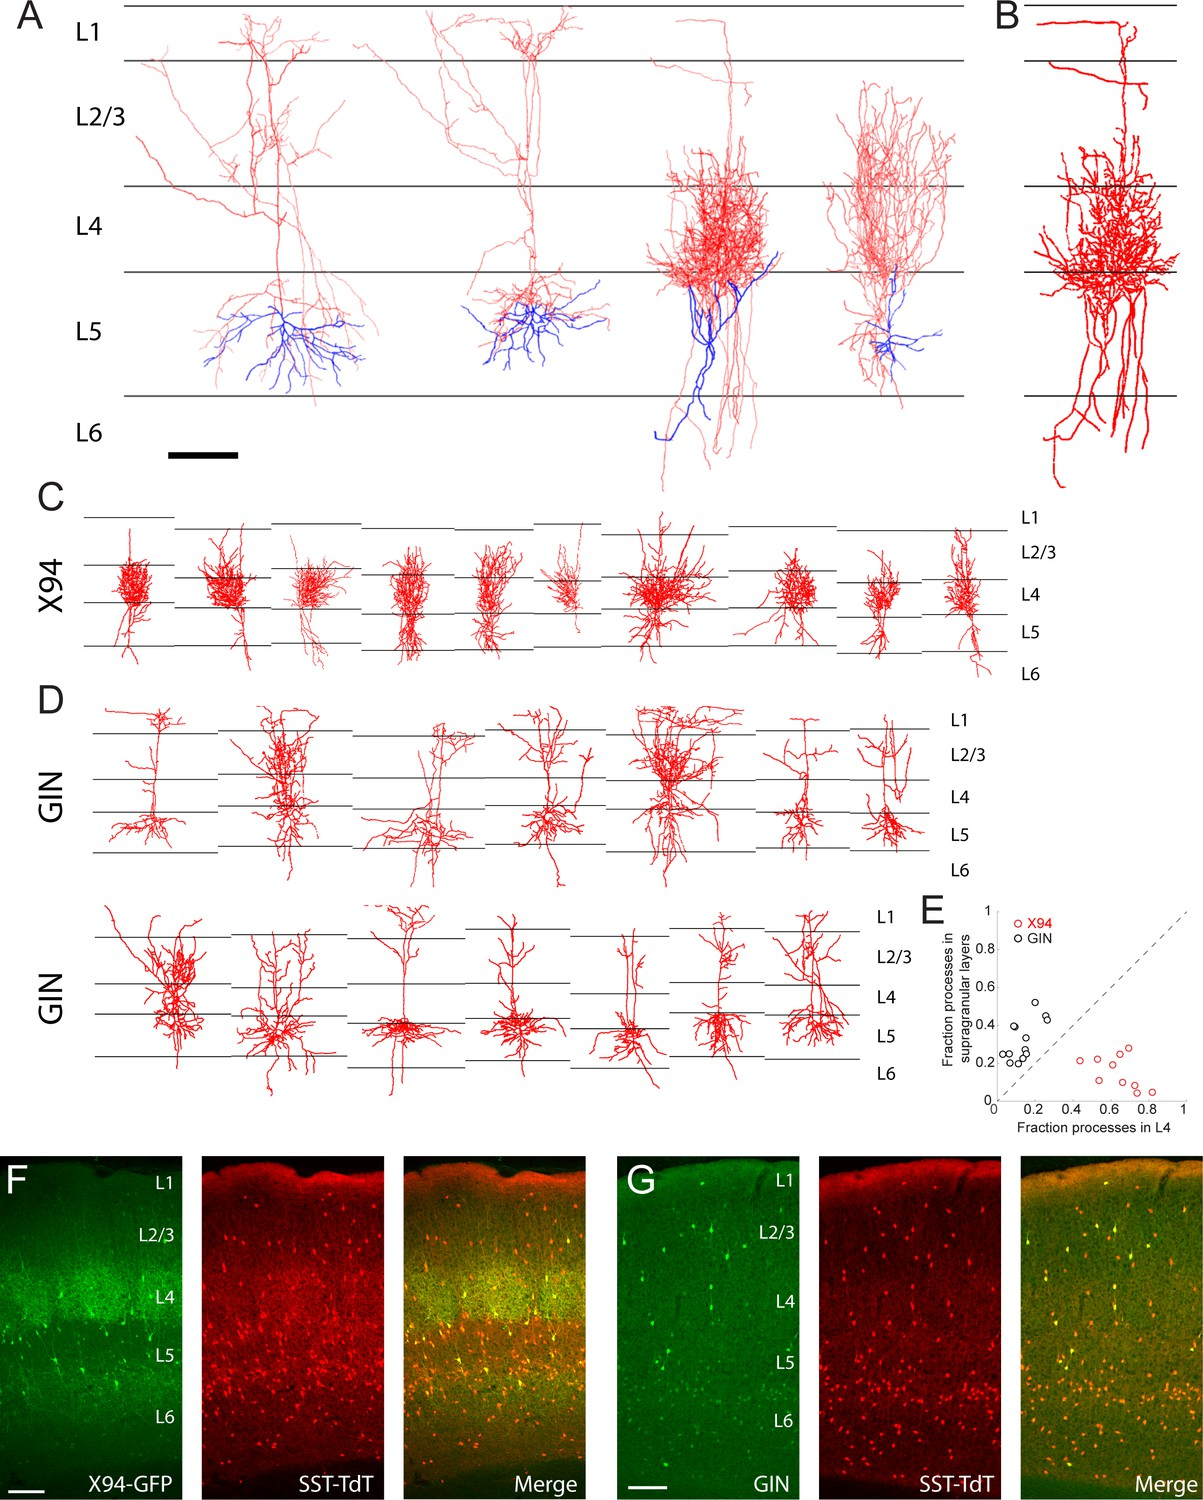 Complementary networks of cortical somatostatin interneurons